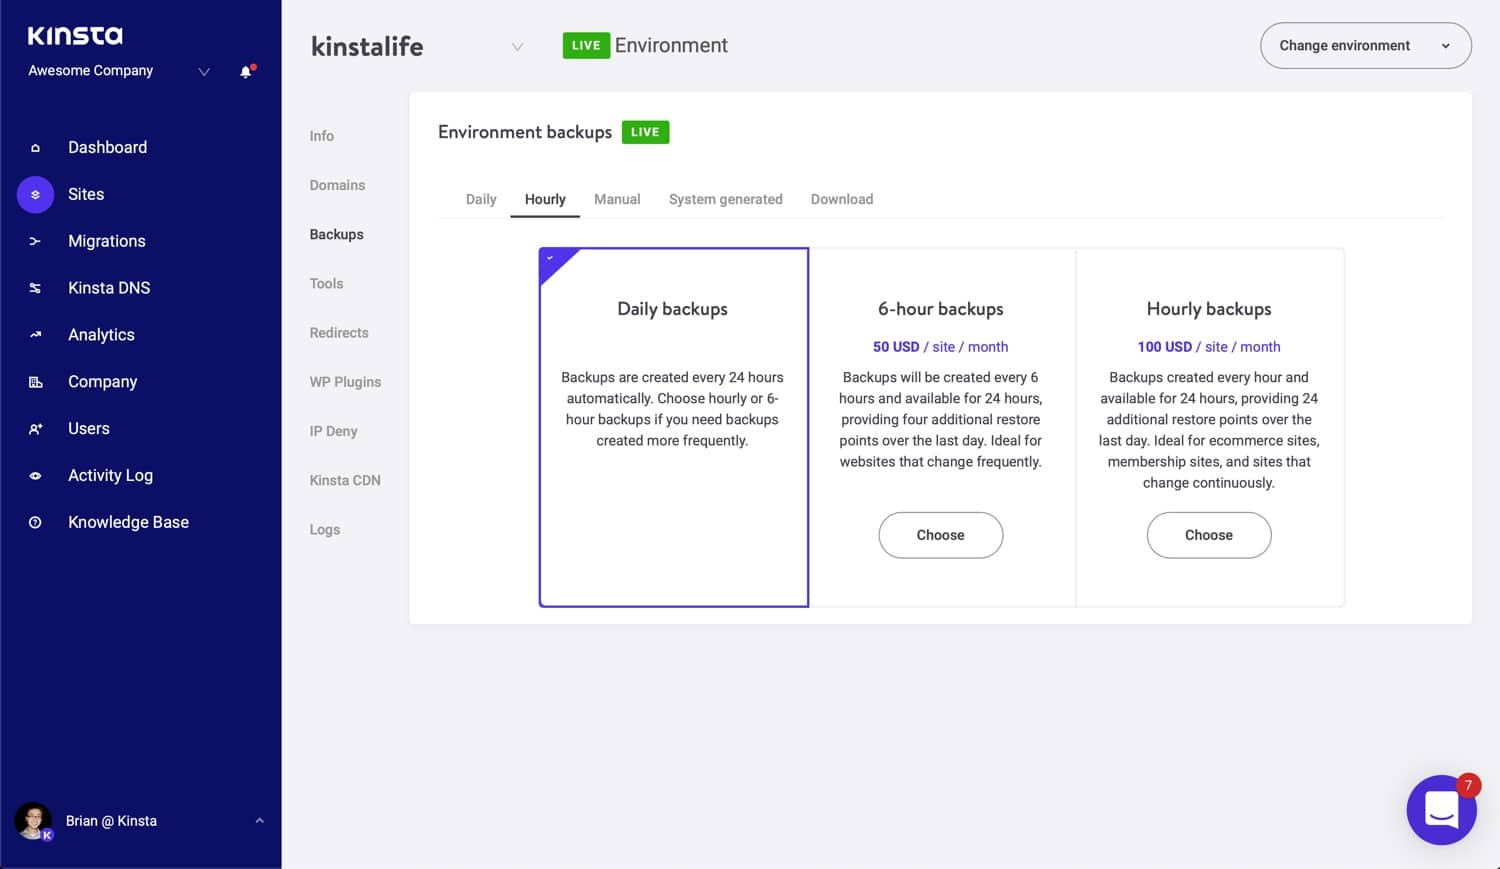 Hourly backup option in MyKinsta.